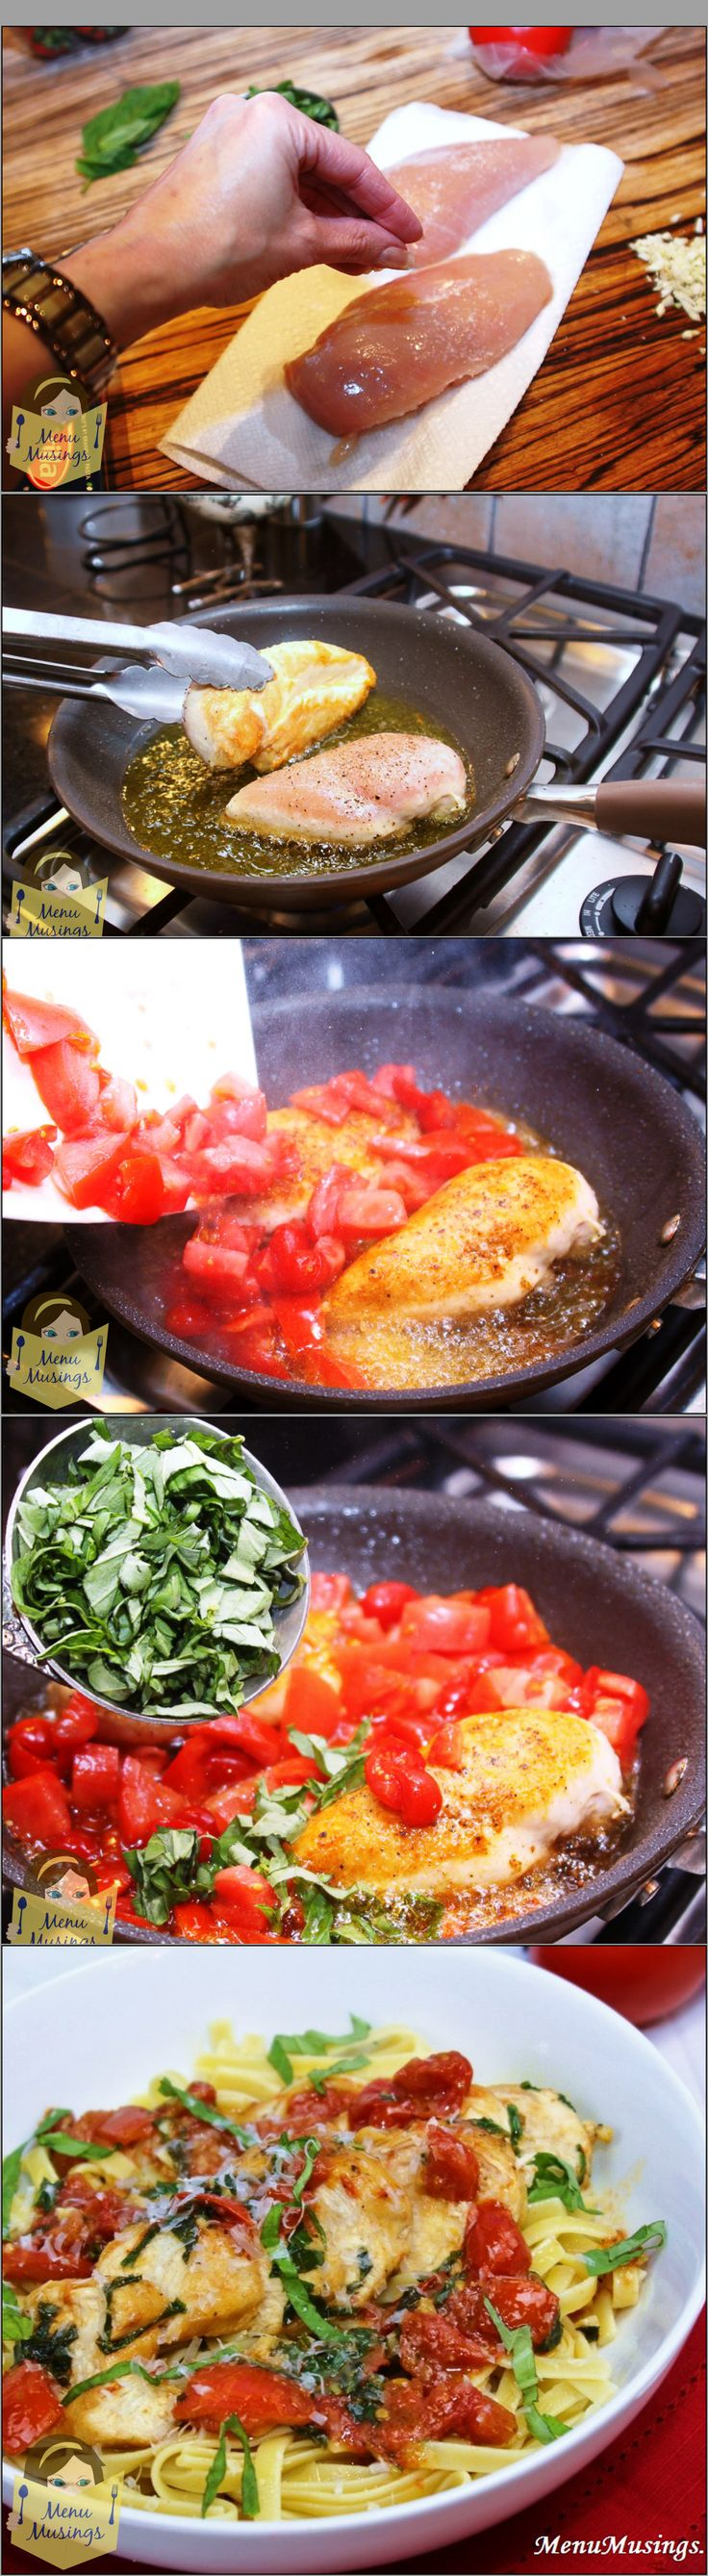 Tomato Basil Chicken - over 400K people can't be wrong! This step-by-step photo recipe is a huge hit with families, date night, and company.. and comes in under 30 minutes with all fresh ingredients. <3 <3